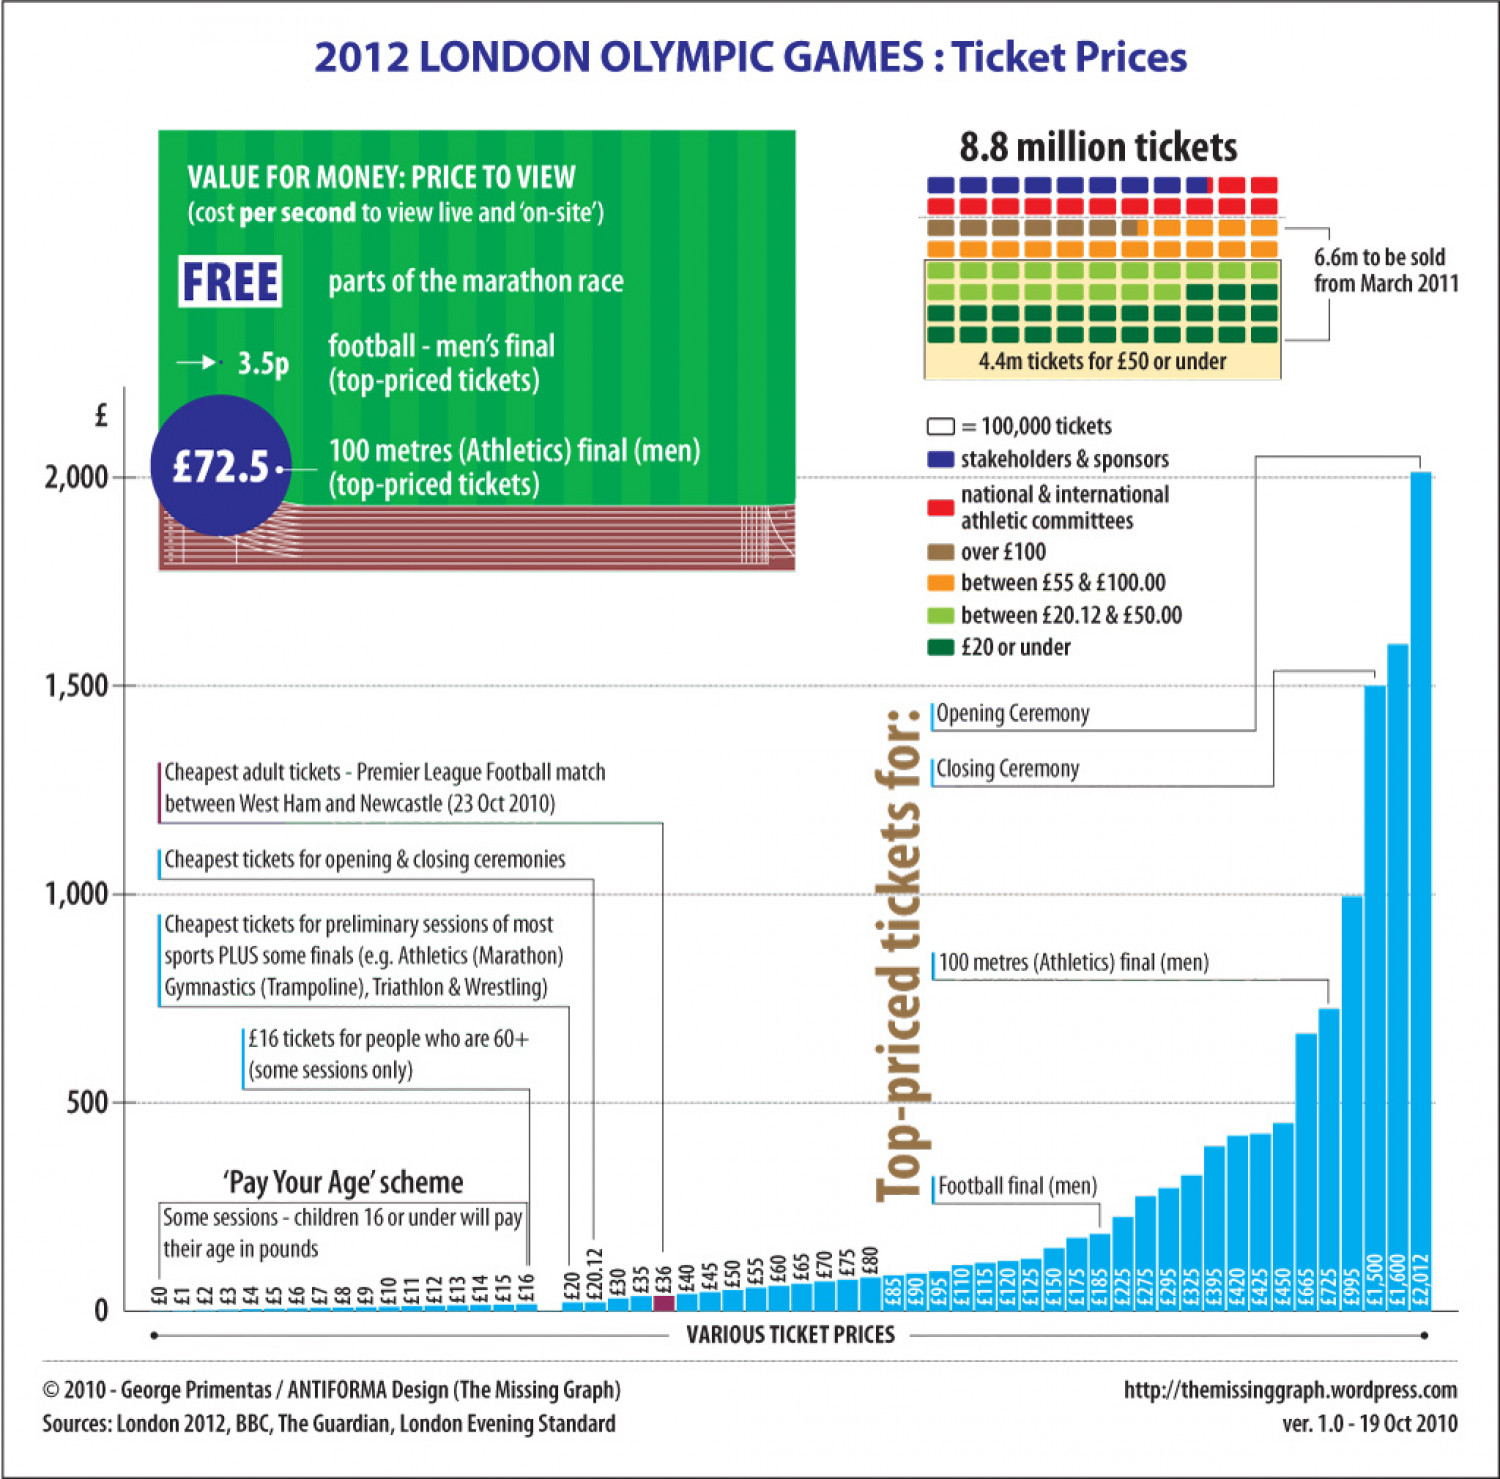 2012 London Olympic Games: Ticket Prices Infographic